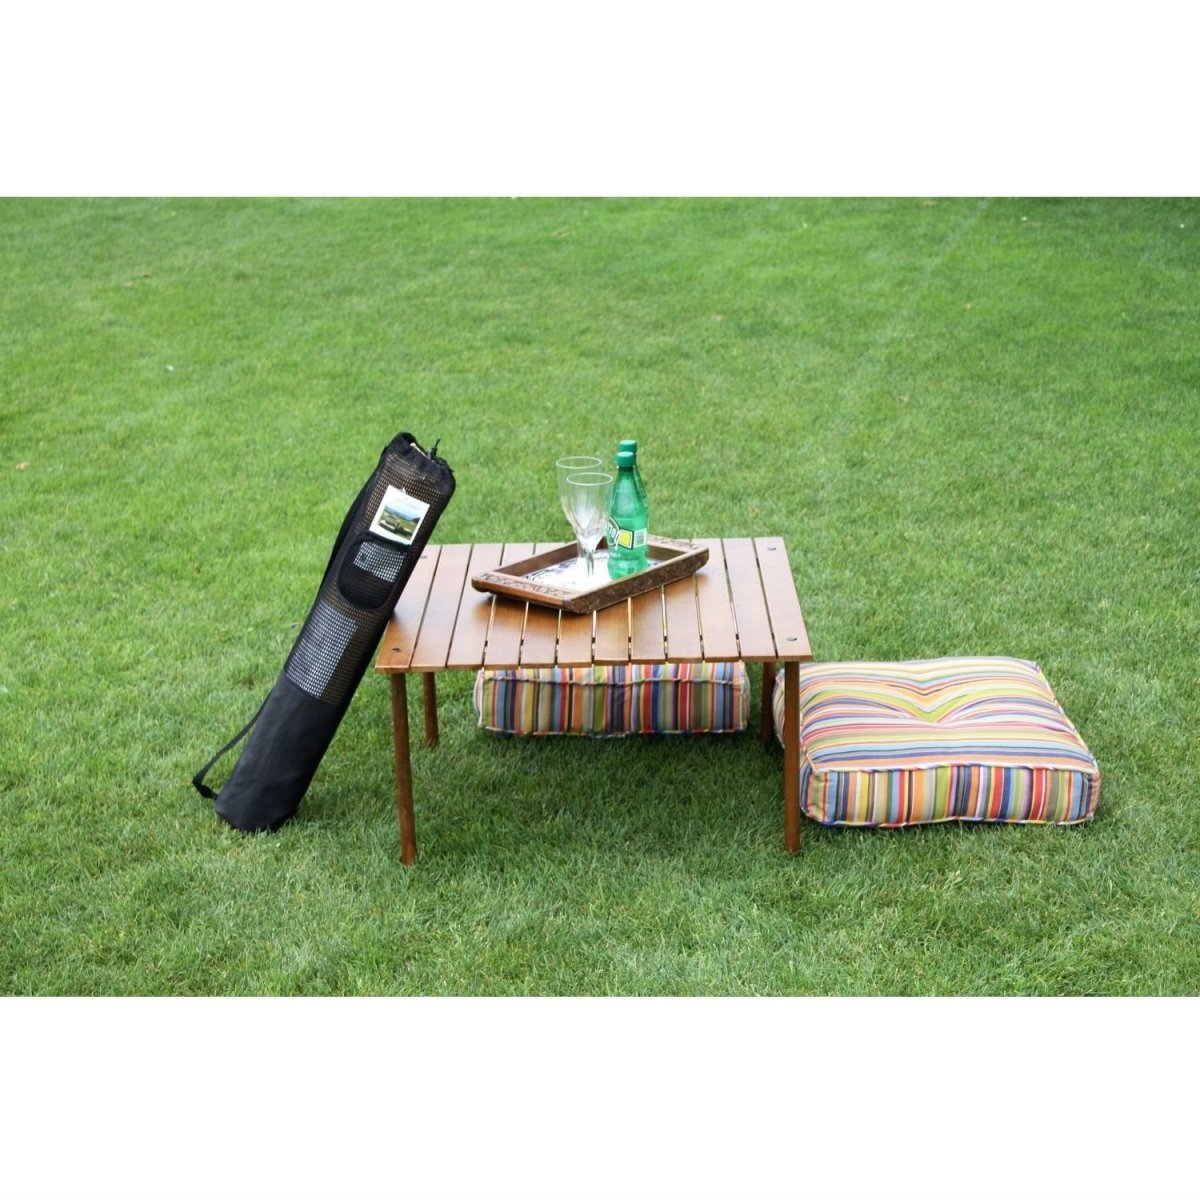 Outdoor Portable Folding Table with Carry Bag with Solid Wood Top.